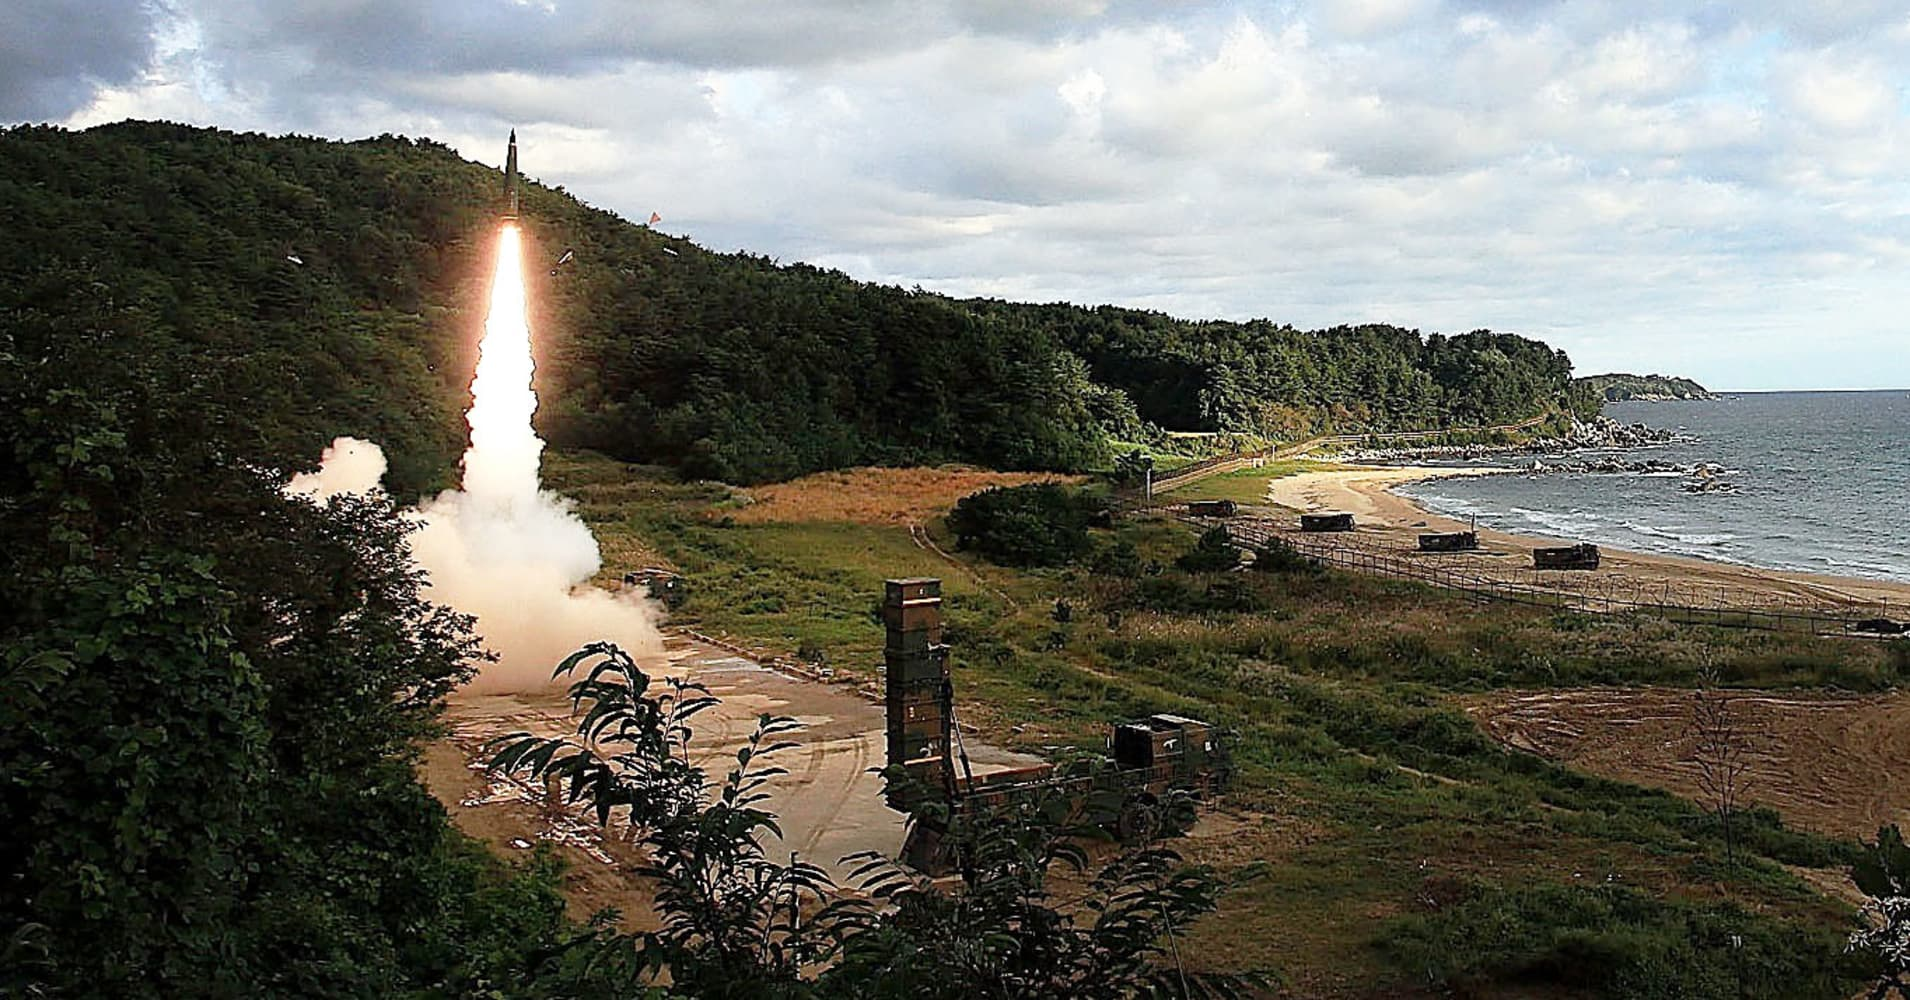 Embarrassing failure of 'key' ballistic missile by Seoul raises questions of readiness